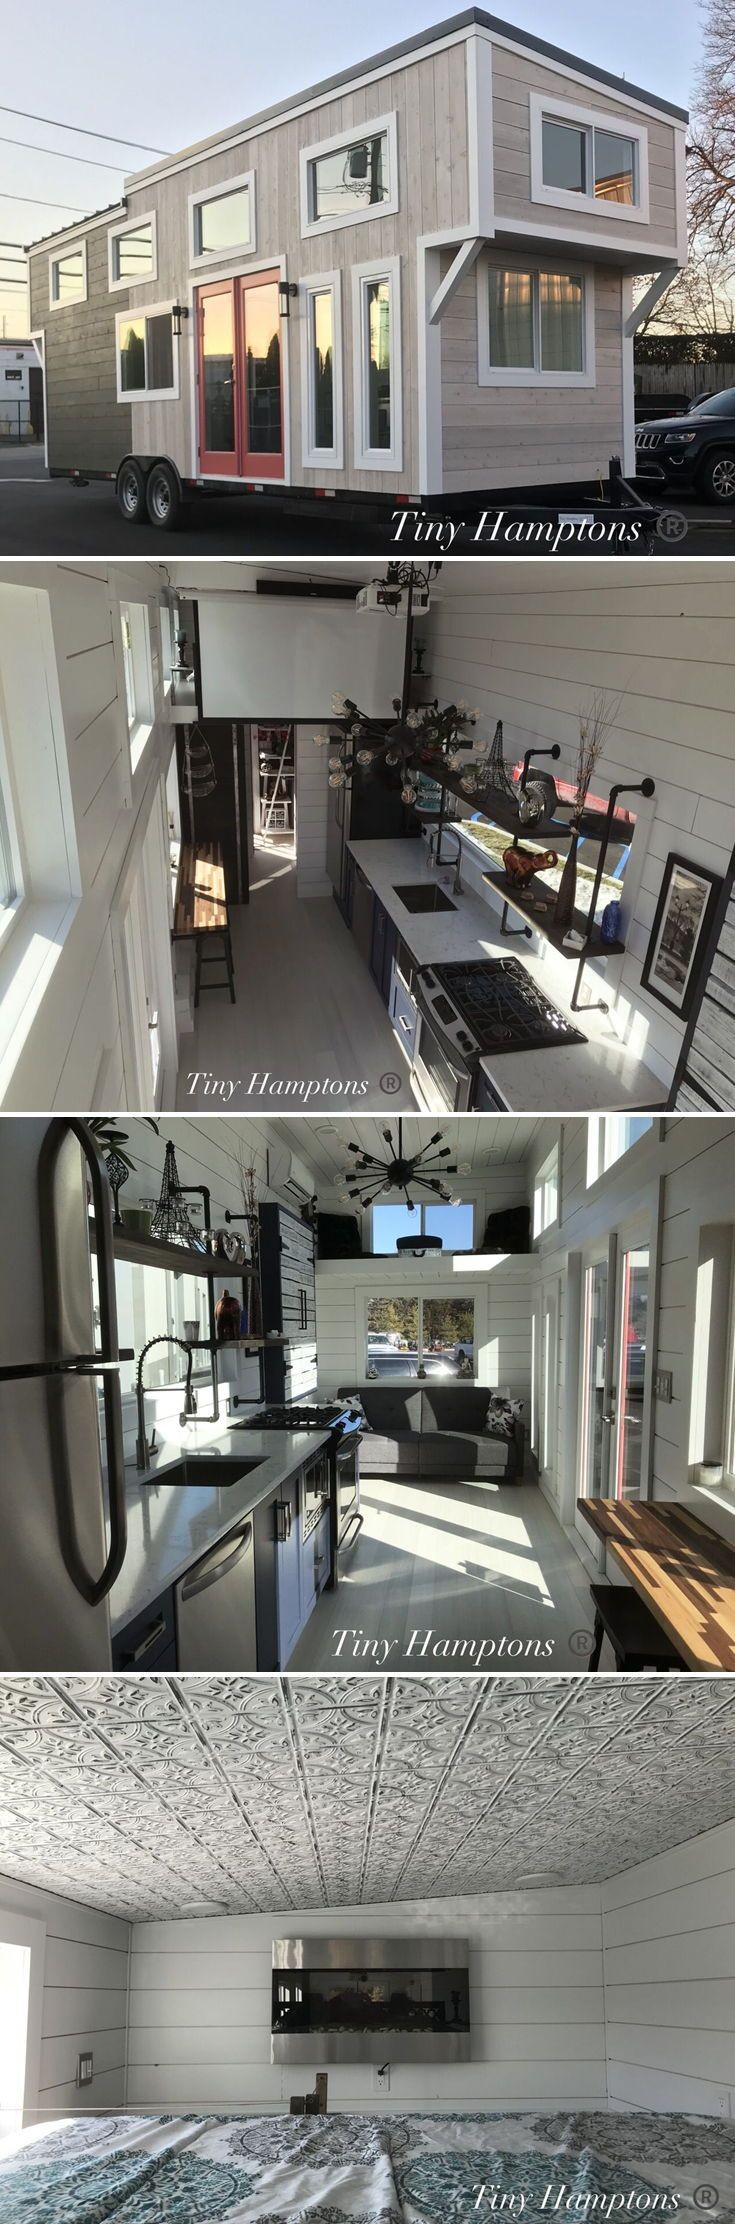 Bridgehampton by Tiny Hamptons